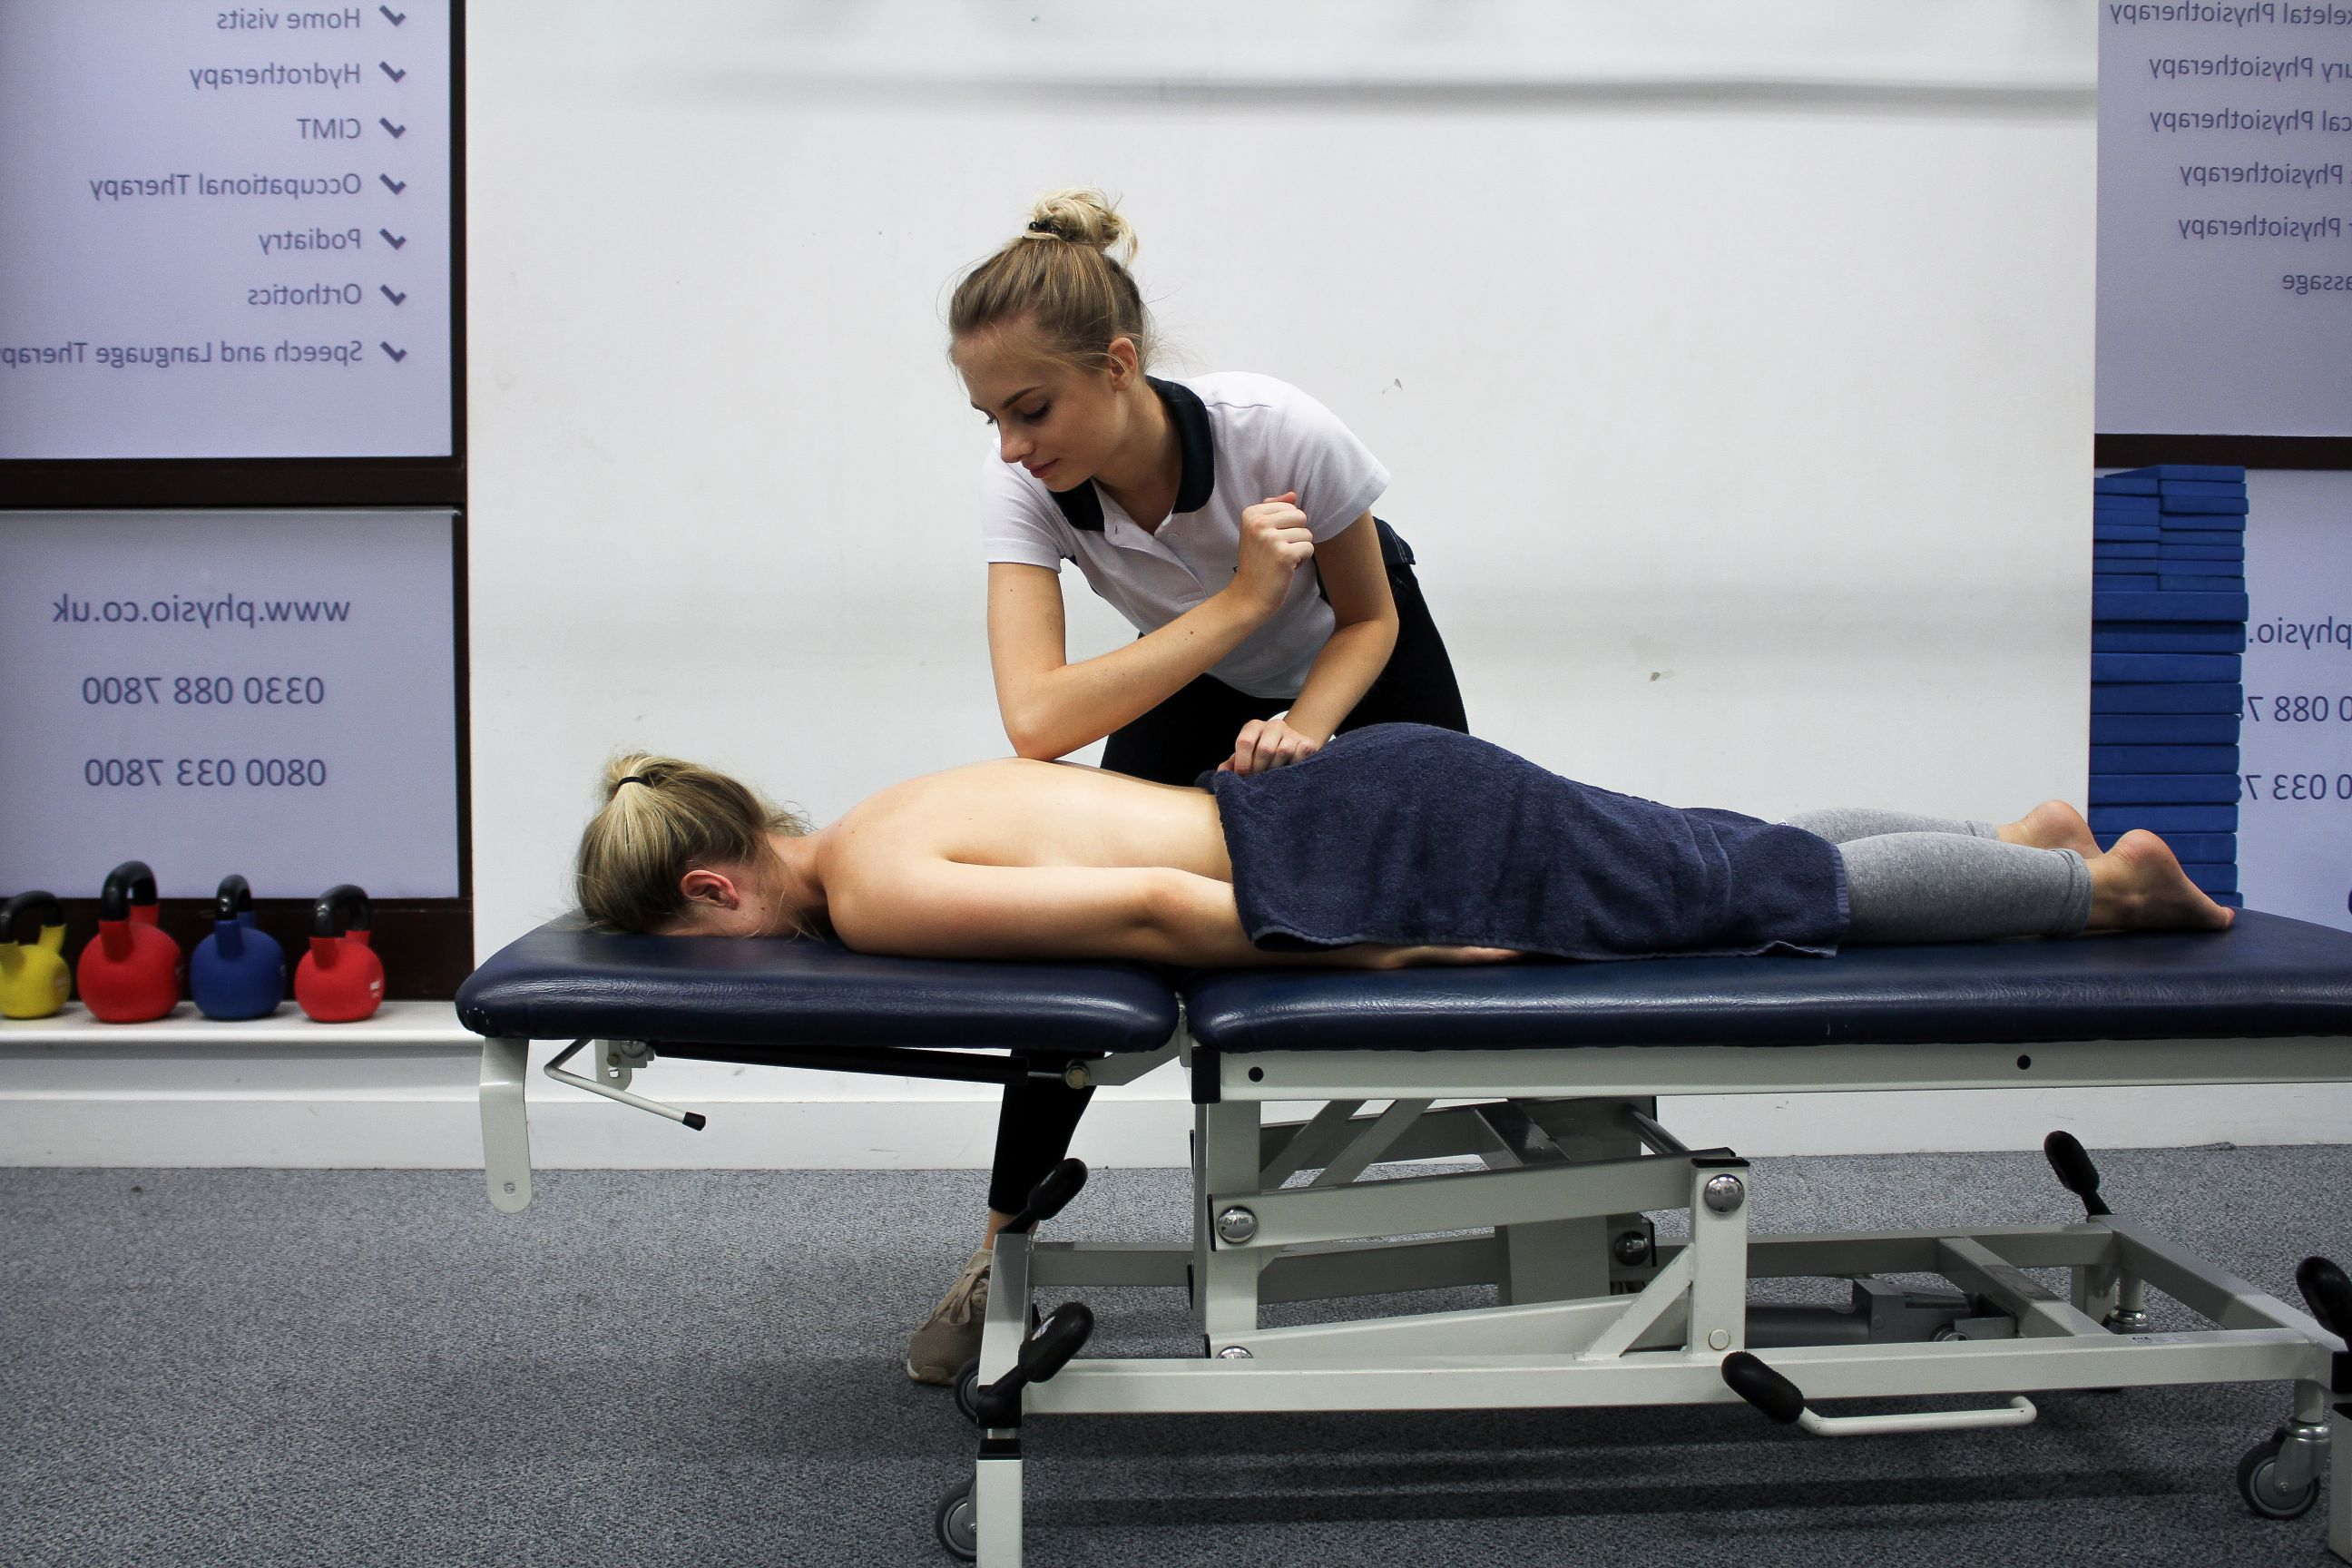 Patient receiving treatment to the back.